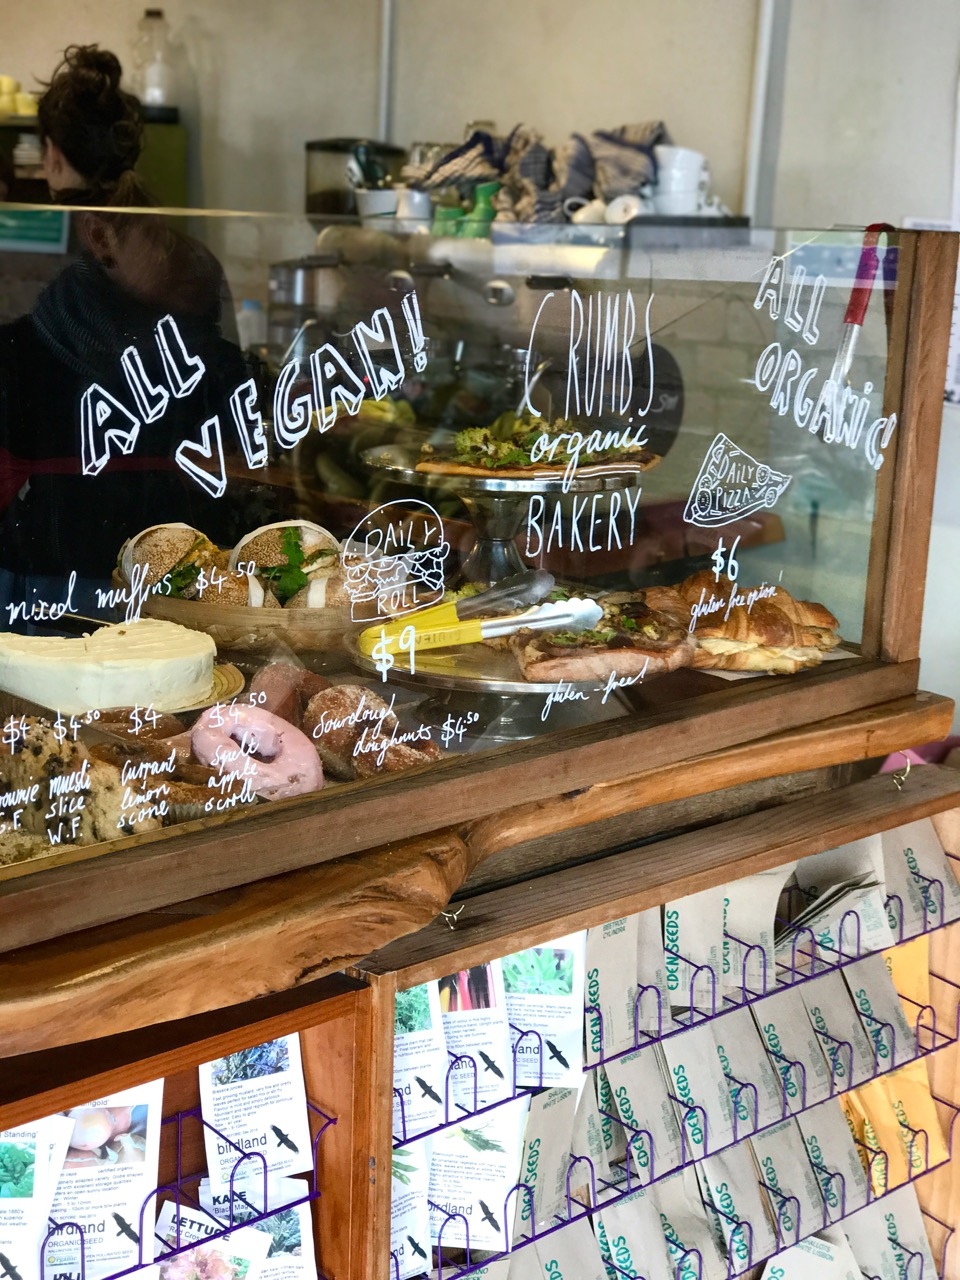 Best vegan baked bakery goods in Melbourne! Vegan tofu croissants, pies, pizza, sandwiches, cakes, slices, donuts, healthy treats. Fitzroy.